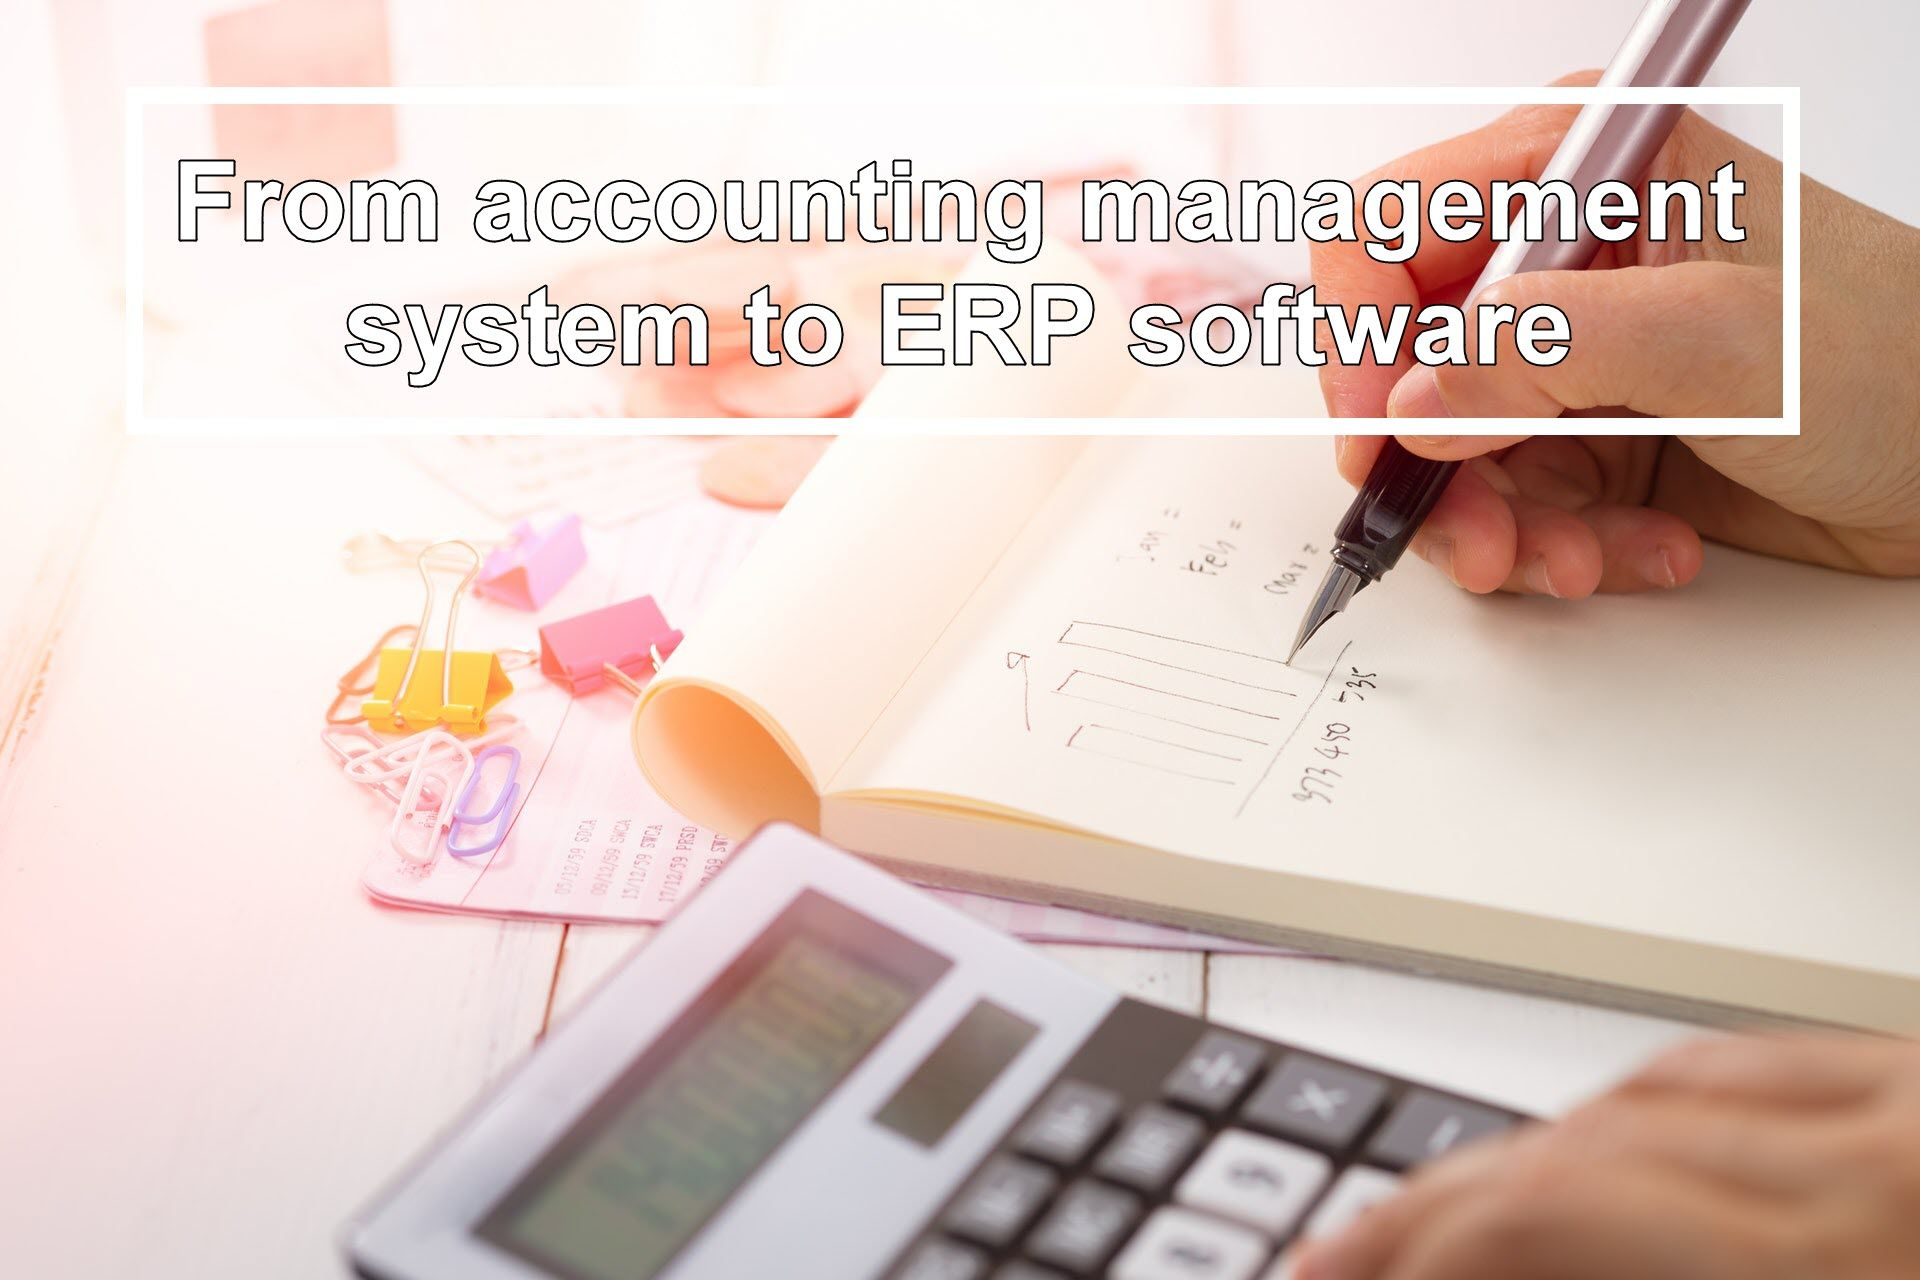 From accounting management system to ERP software